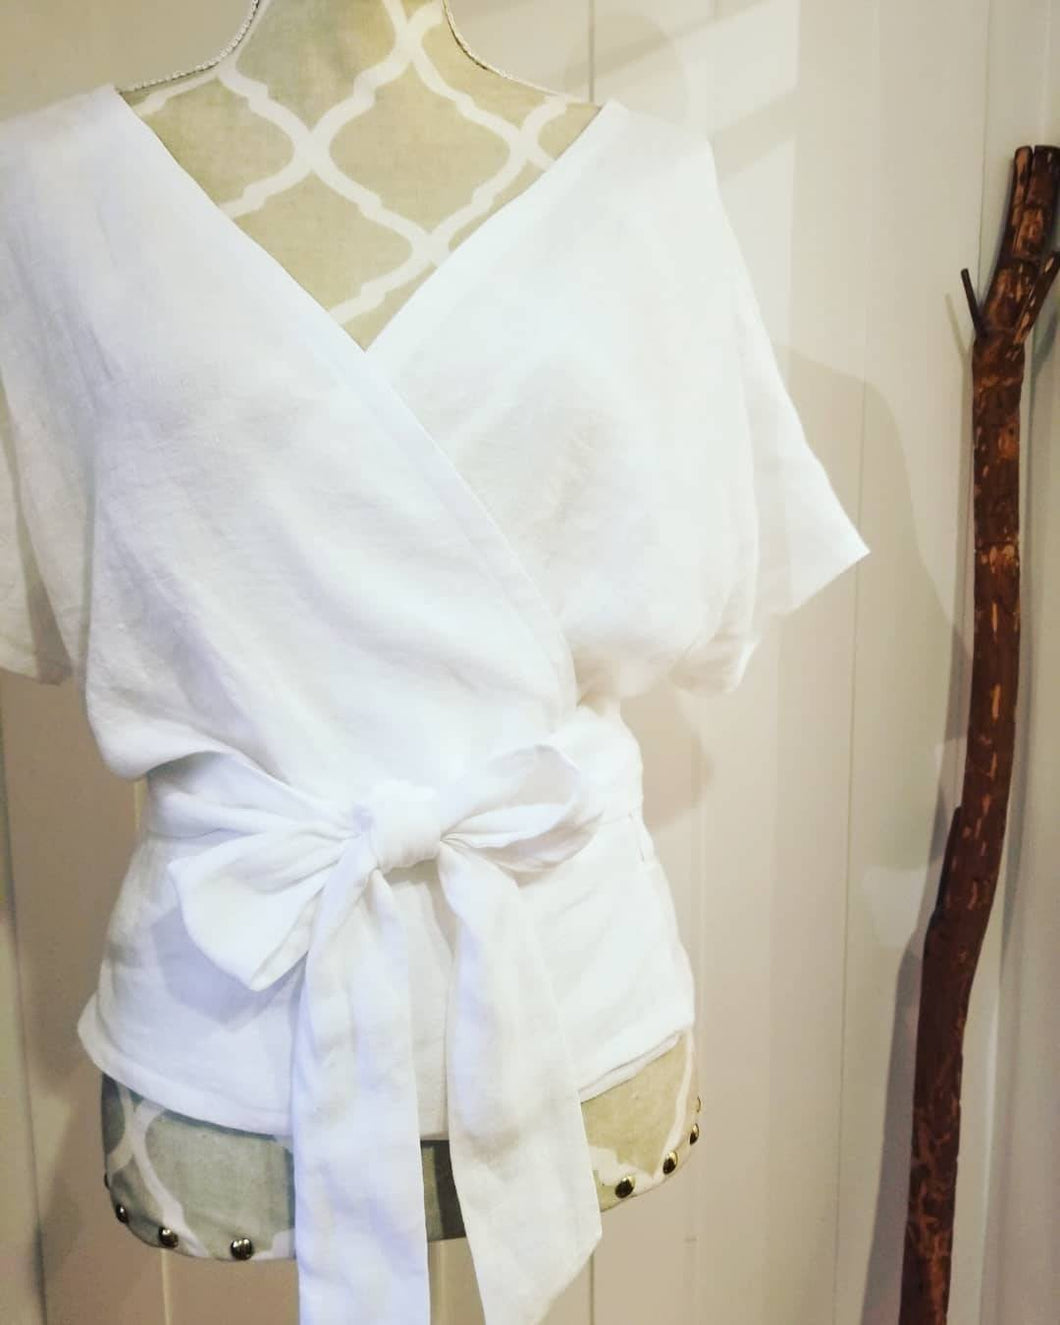 Freedom Wrap Top 'Fully Reversible' in 100% White, Tangerine or Black Linen